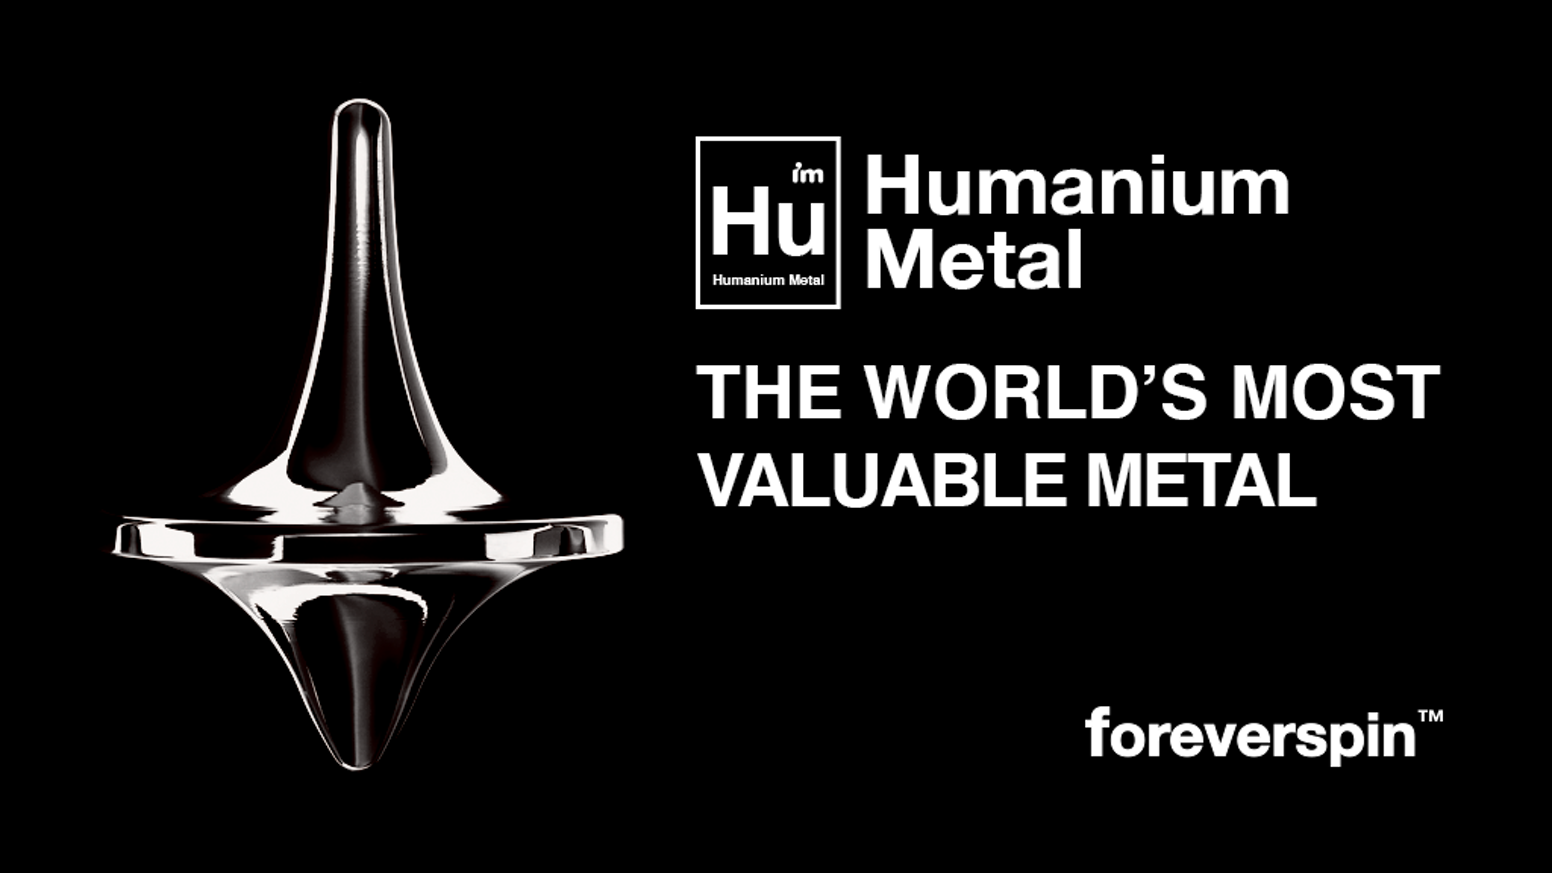 Foreverspin Humanium Metal Spinning Top - The World's Most Valuable Metal